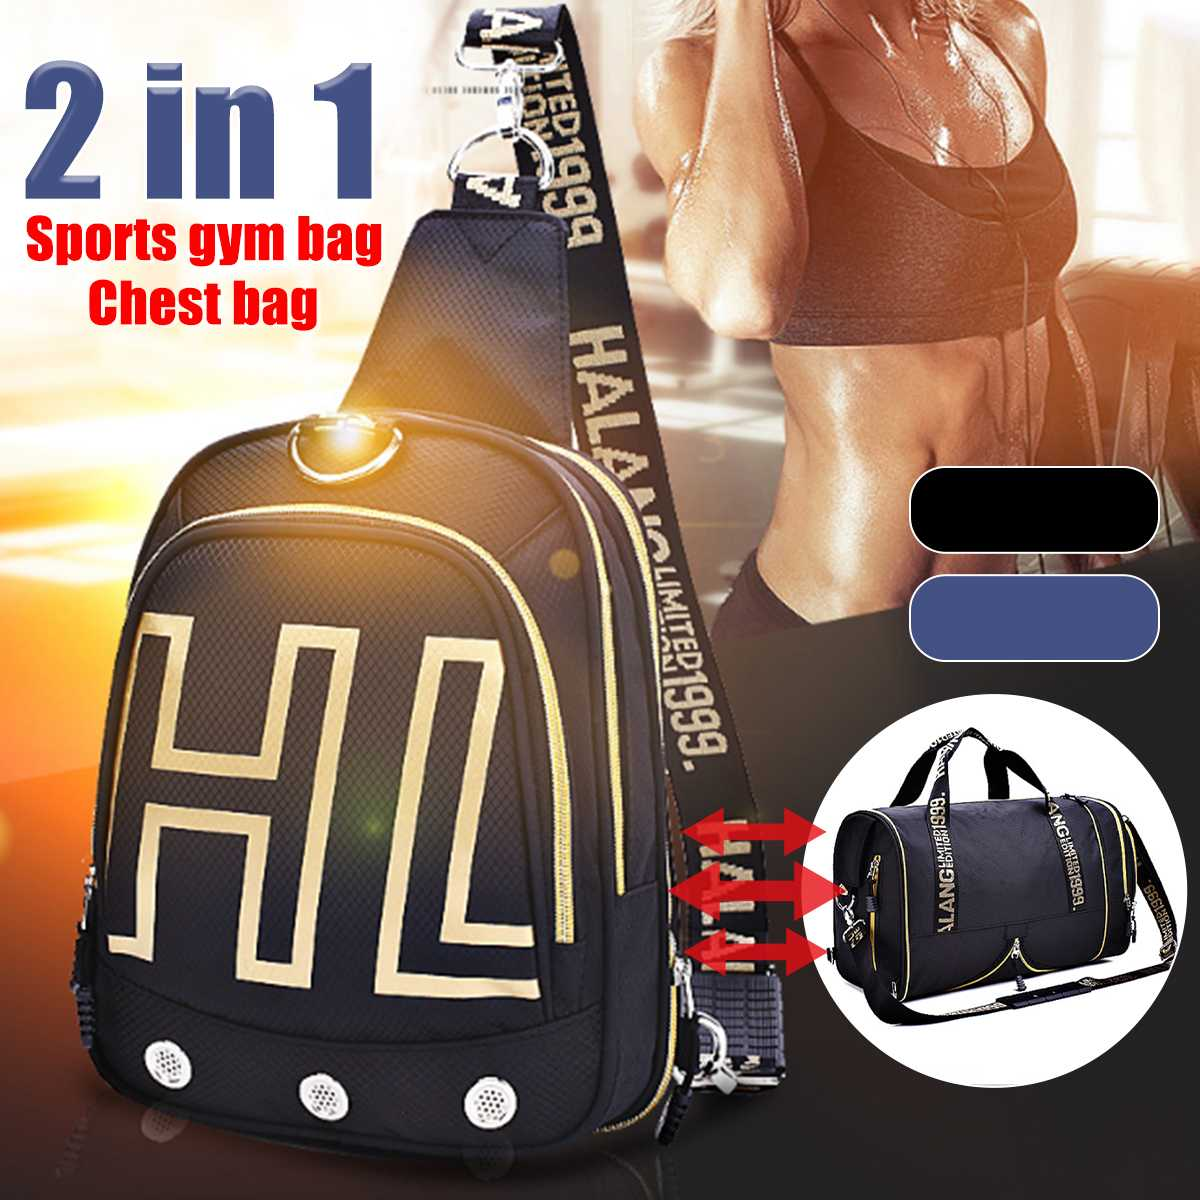 Men Women 2 IN 1 Sports Gym 2020 Duffle Bag Chest Bag Fitness Travel Dry Wet Gymtas Yoga Carry On Shoulder Handbag Luggage